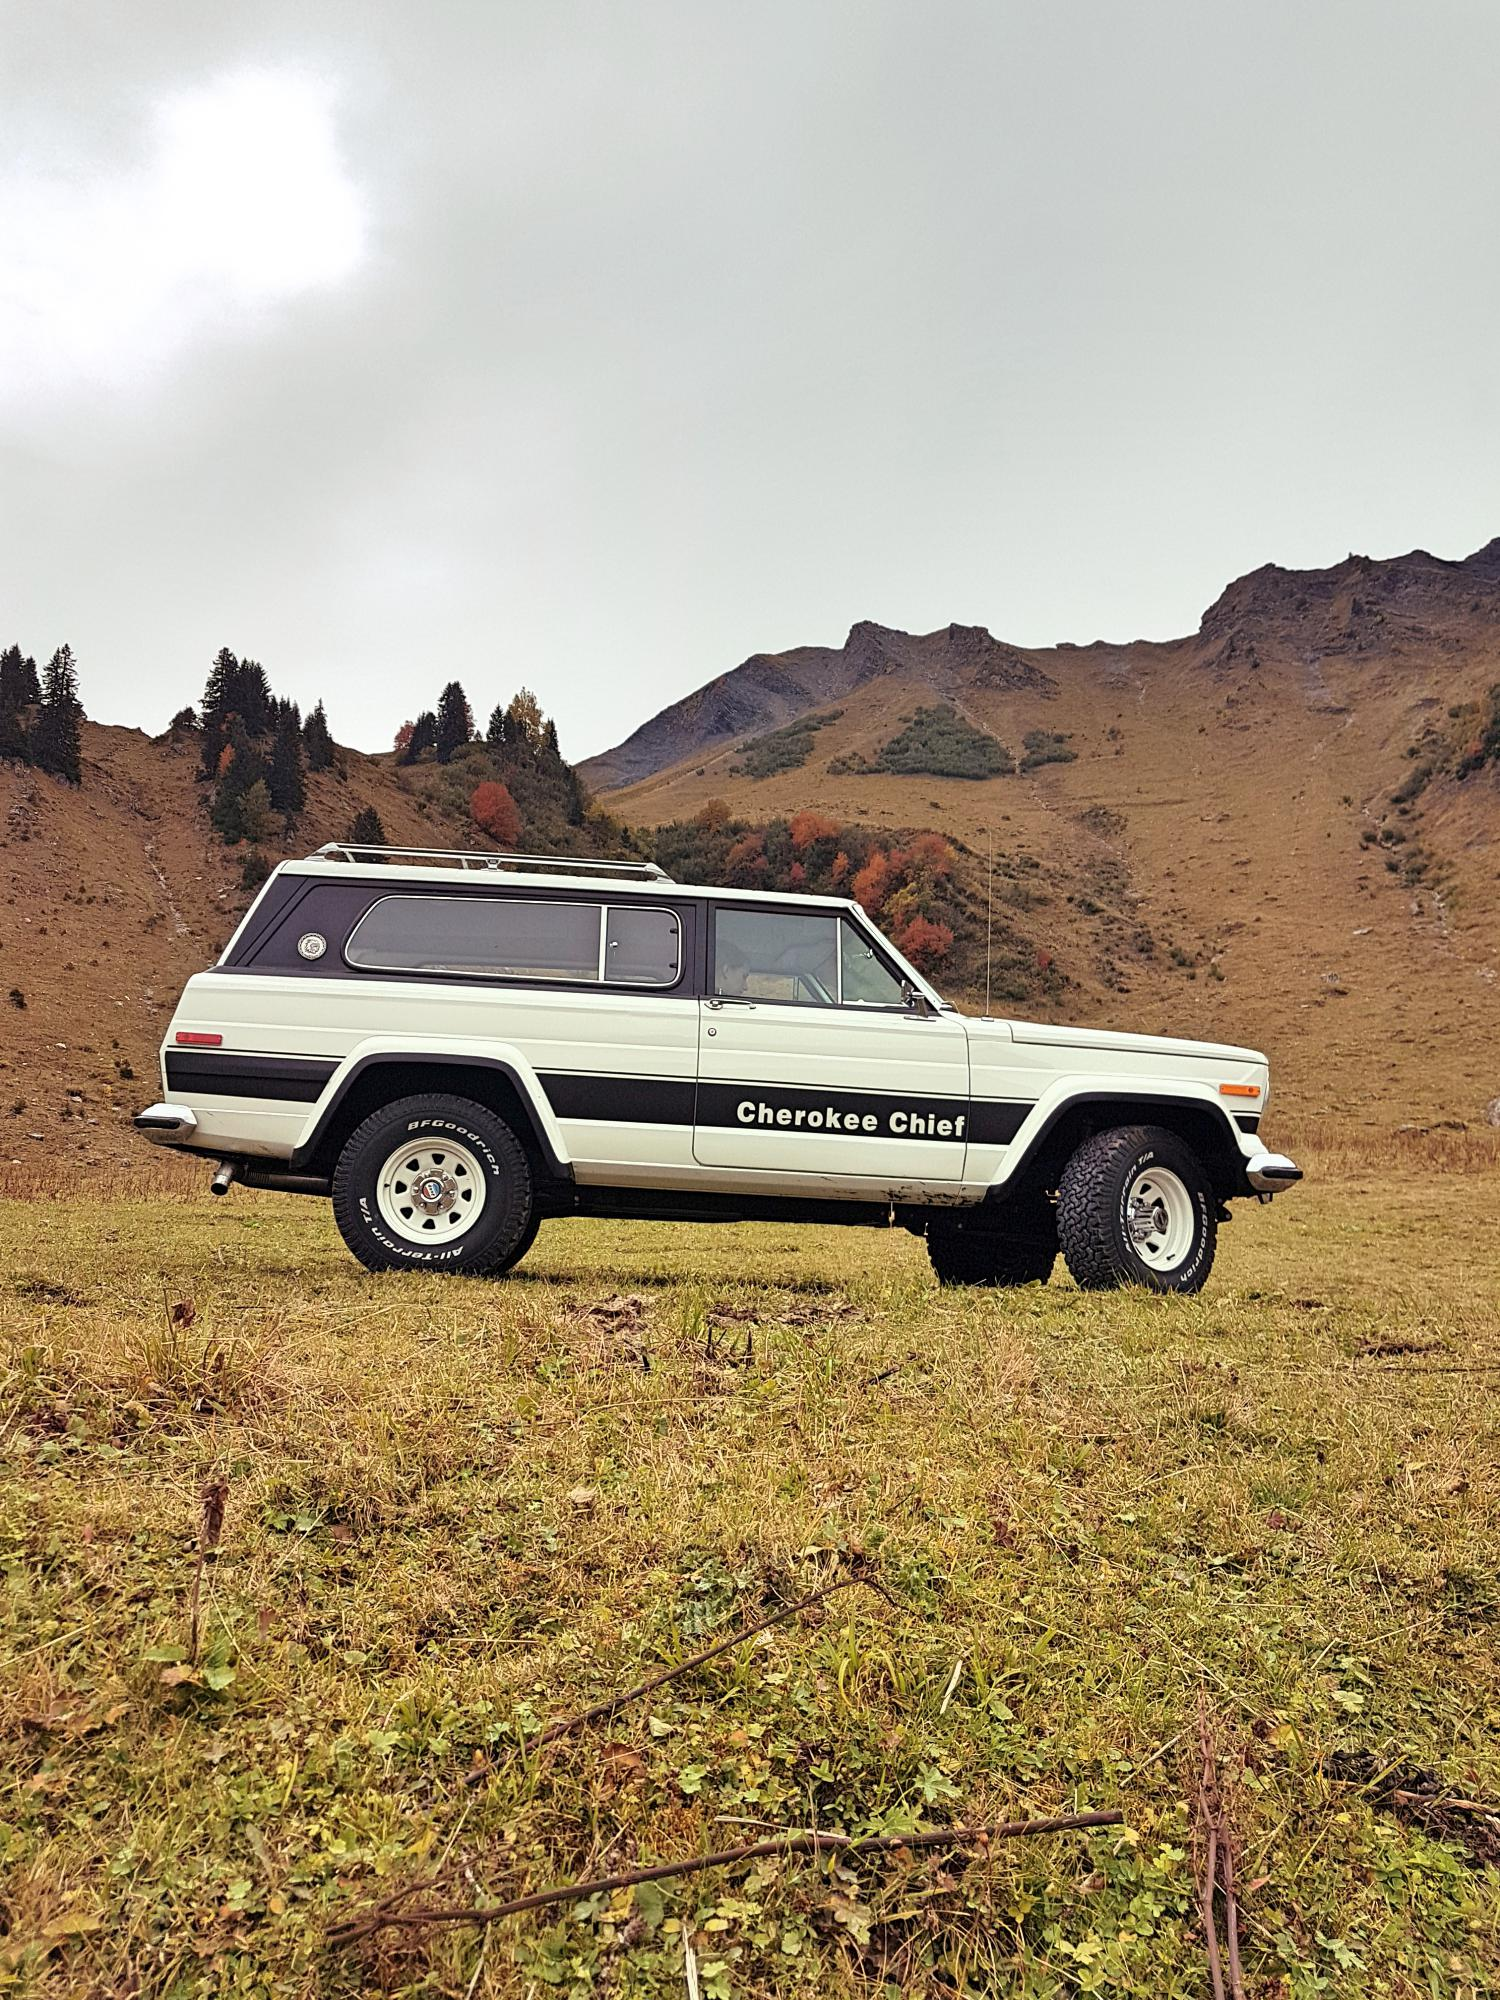 jeep-cherokee-chief-1978-shooting-morgins-switzerland-56.jpg